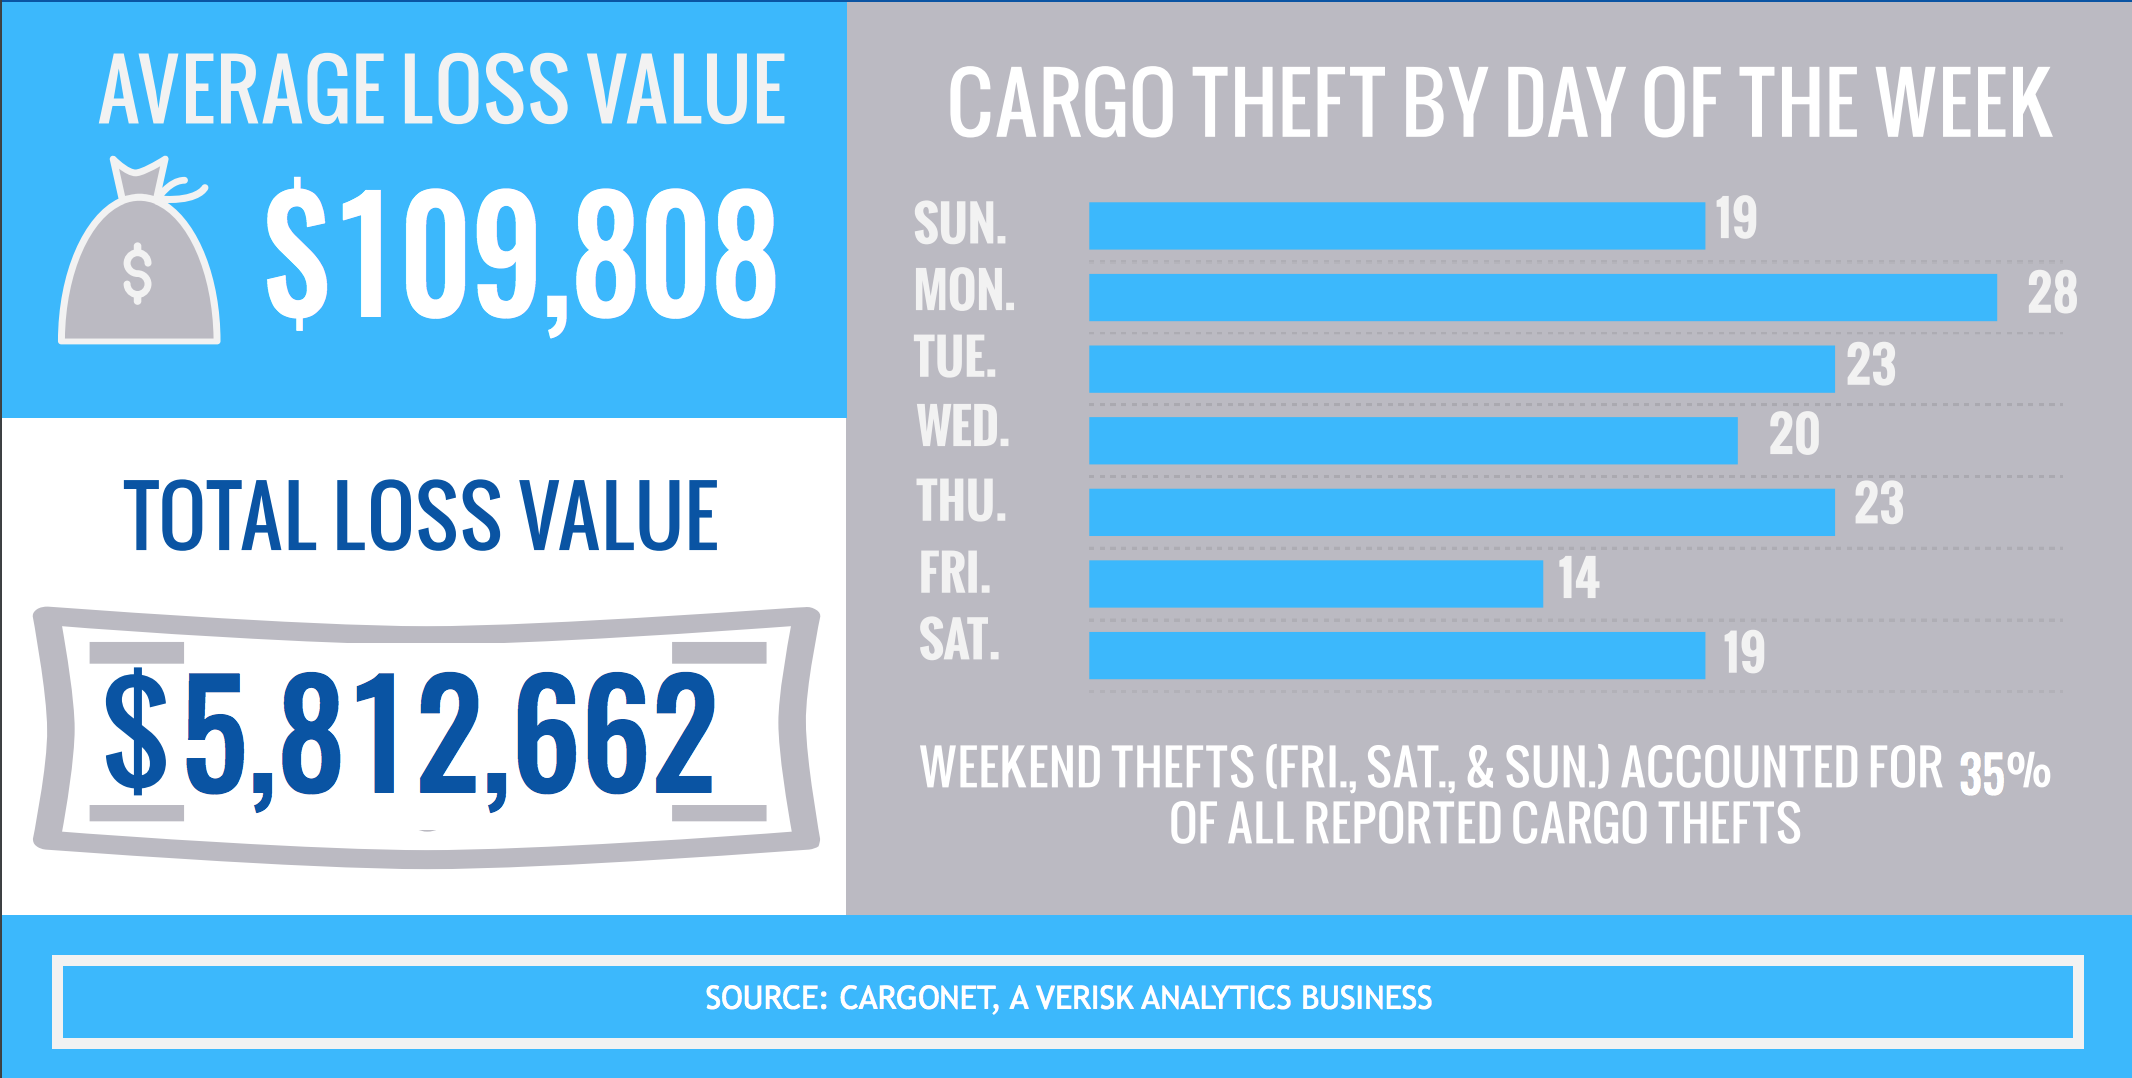 CargoNet says Dec. 29, Jan. 1 and Dec. 24 are the top three days for cargo thefts during the holiday season.